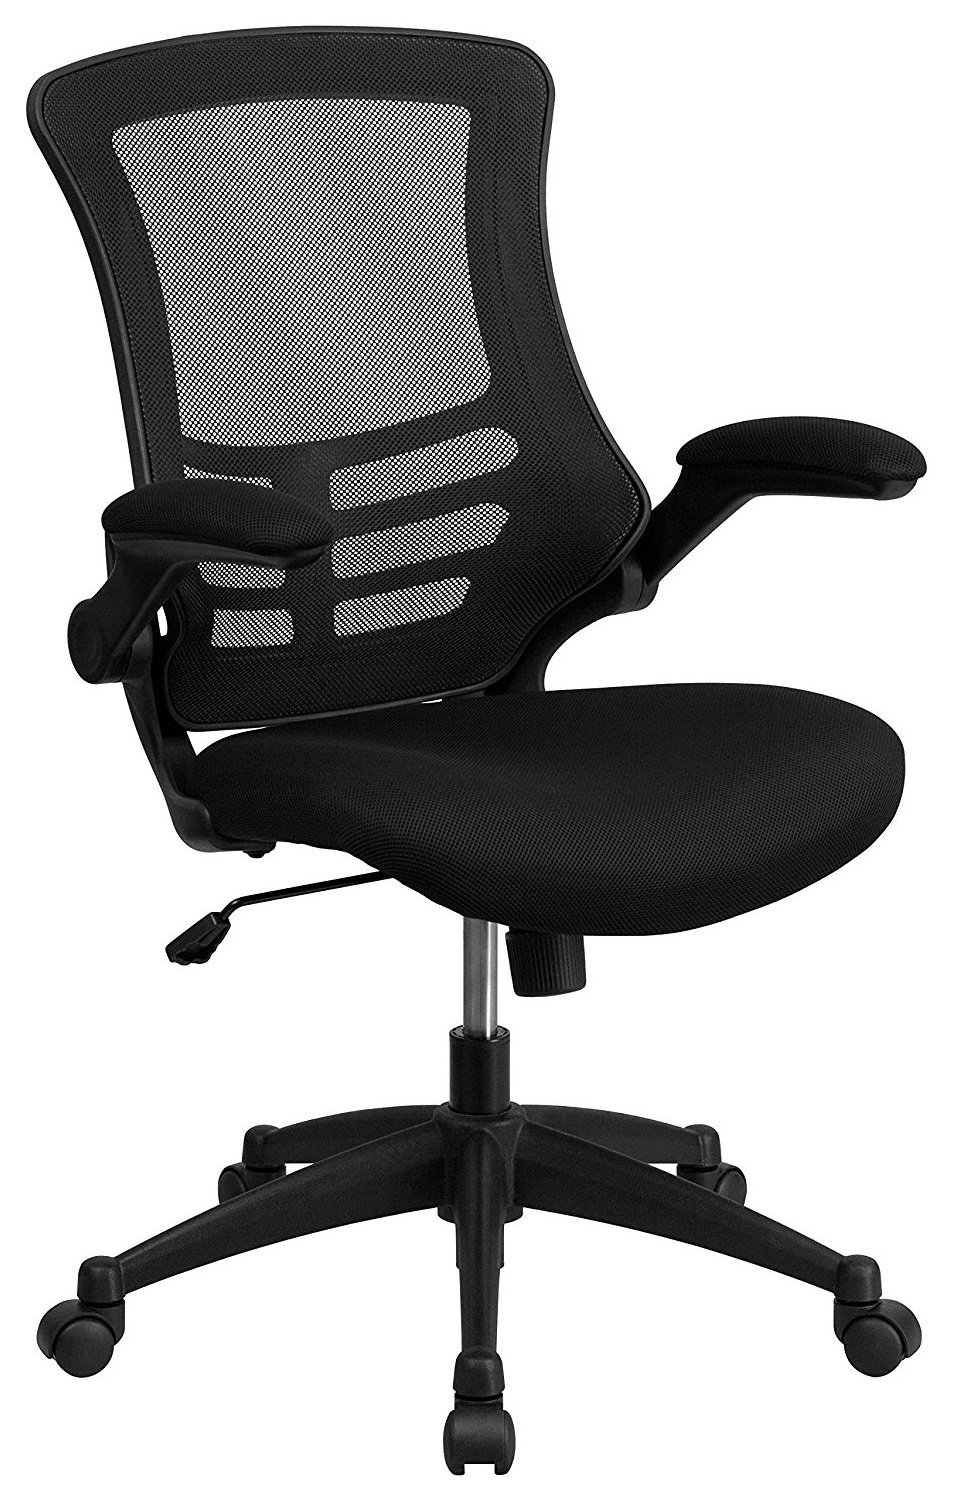 Best Gaming Chairs - Top 20 PC Chairs to Buy in 2019